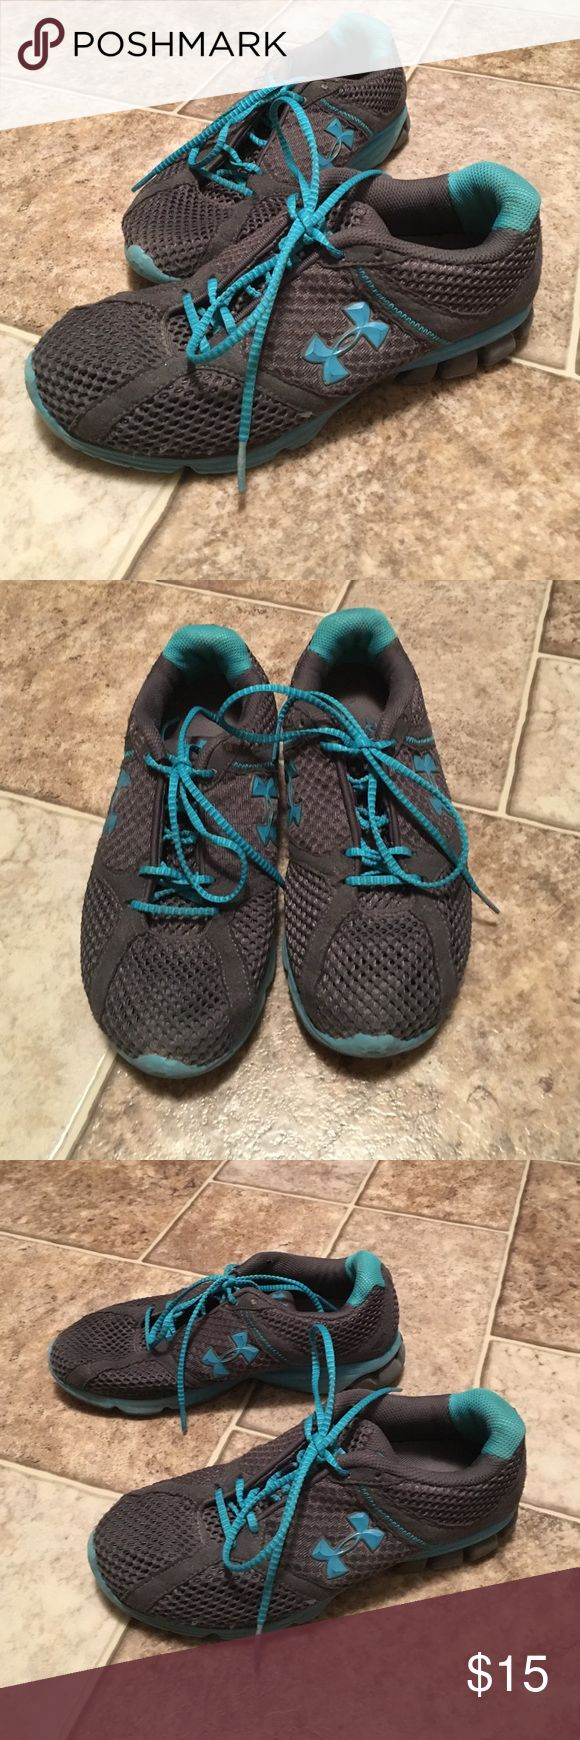 Under Armor tennis shoes Super cute grey and teal Under Armor shoes! Super comfortable!! They are a little worn, but still have PLENTY of go left in them!! Under Armour Shoes Athletic Shoes